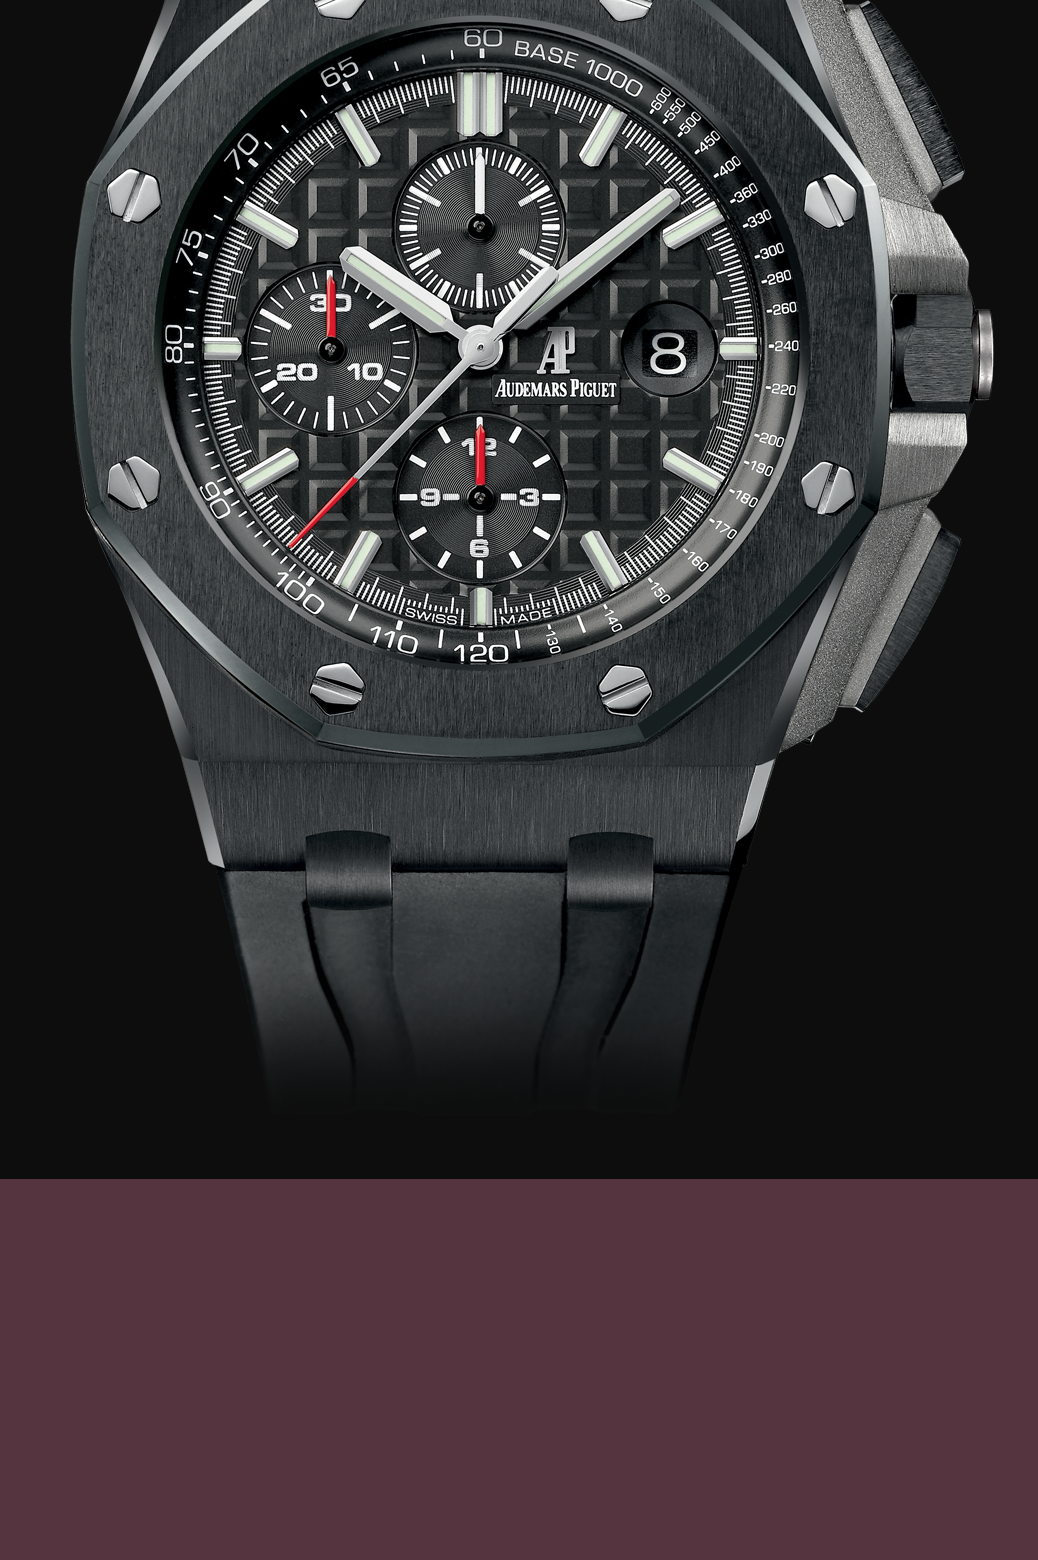 Royal oak offshore chronograph 44mm ceramic audemars piguet the collection for Royal oak offshore ceramic